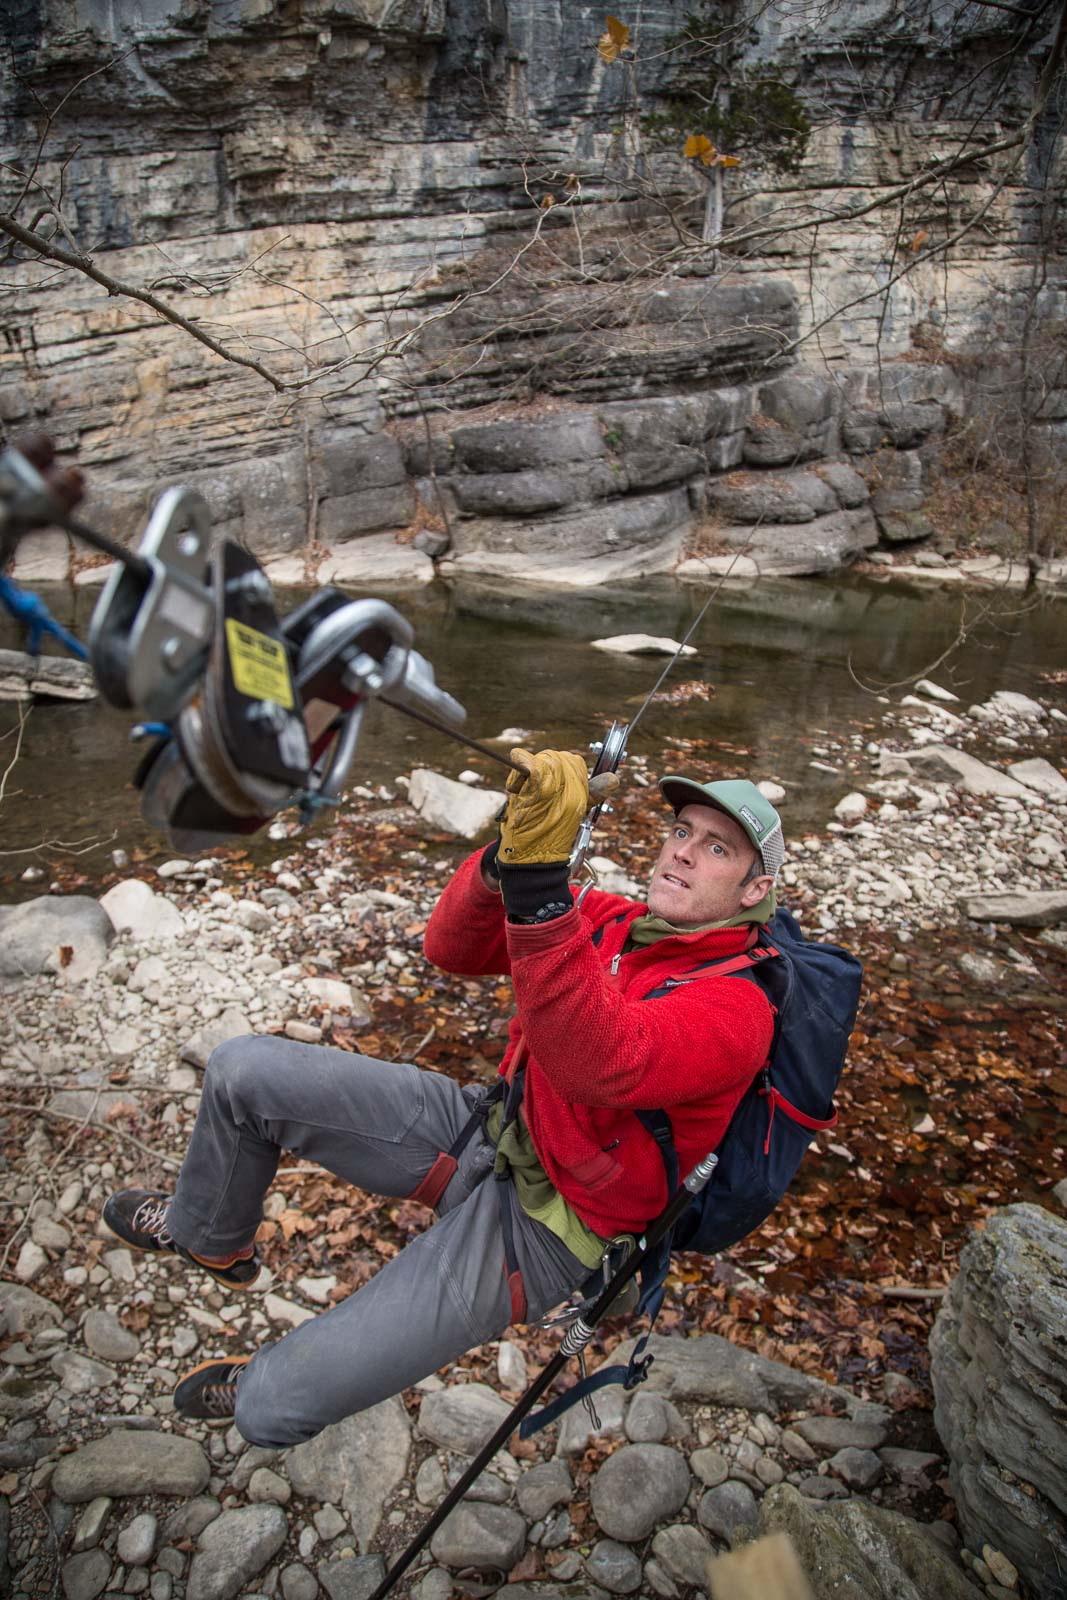 An adventure athlete pulls himself on a cable pulley above a swift river